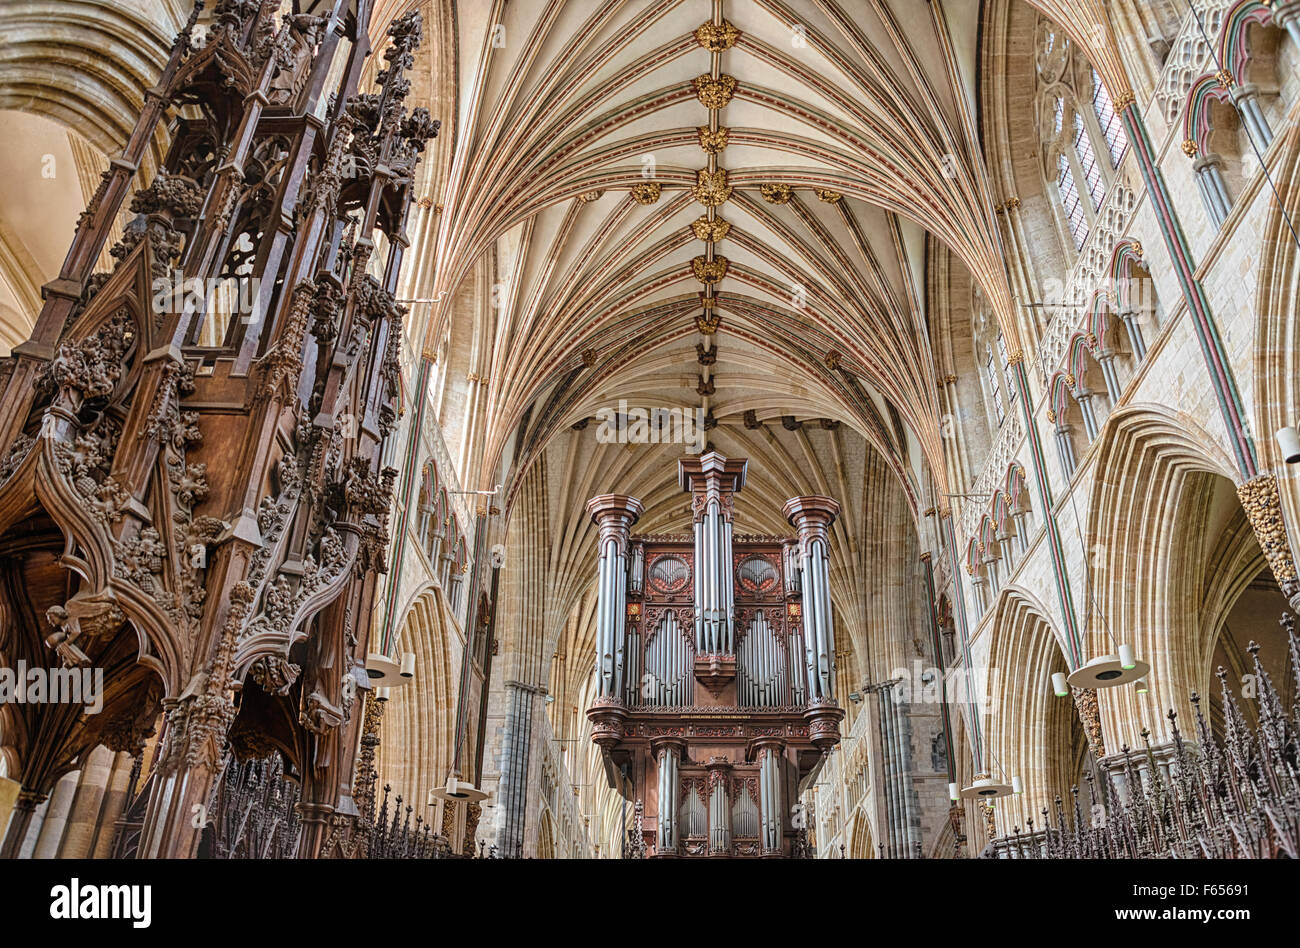 Interior and Pipe Organ of Exeter Cathedral, Devon, England, UK Stock Photo